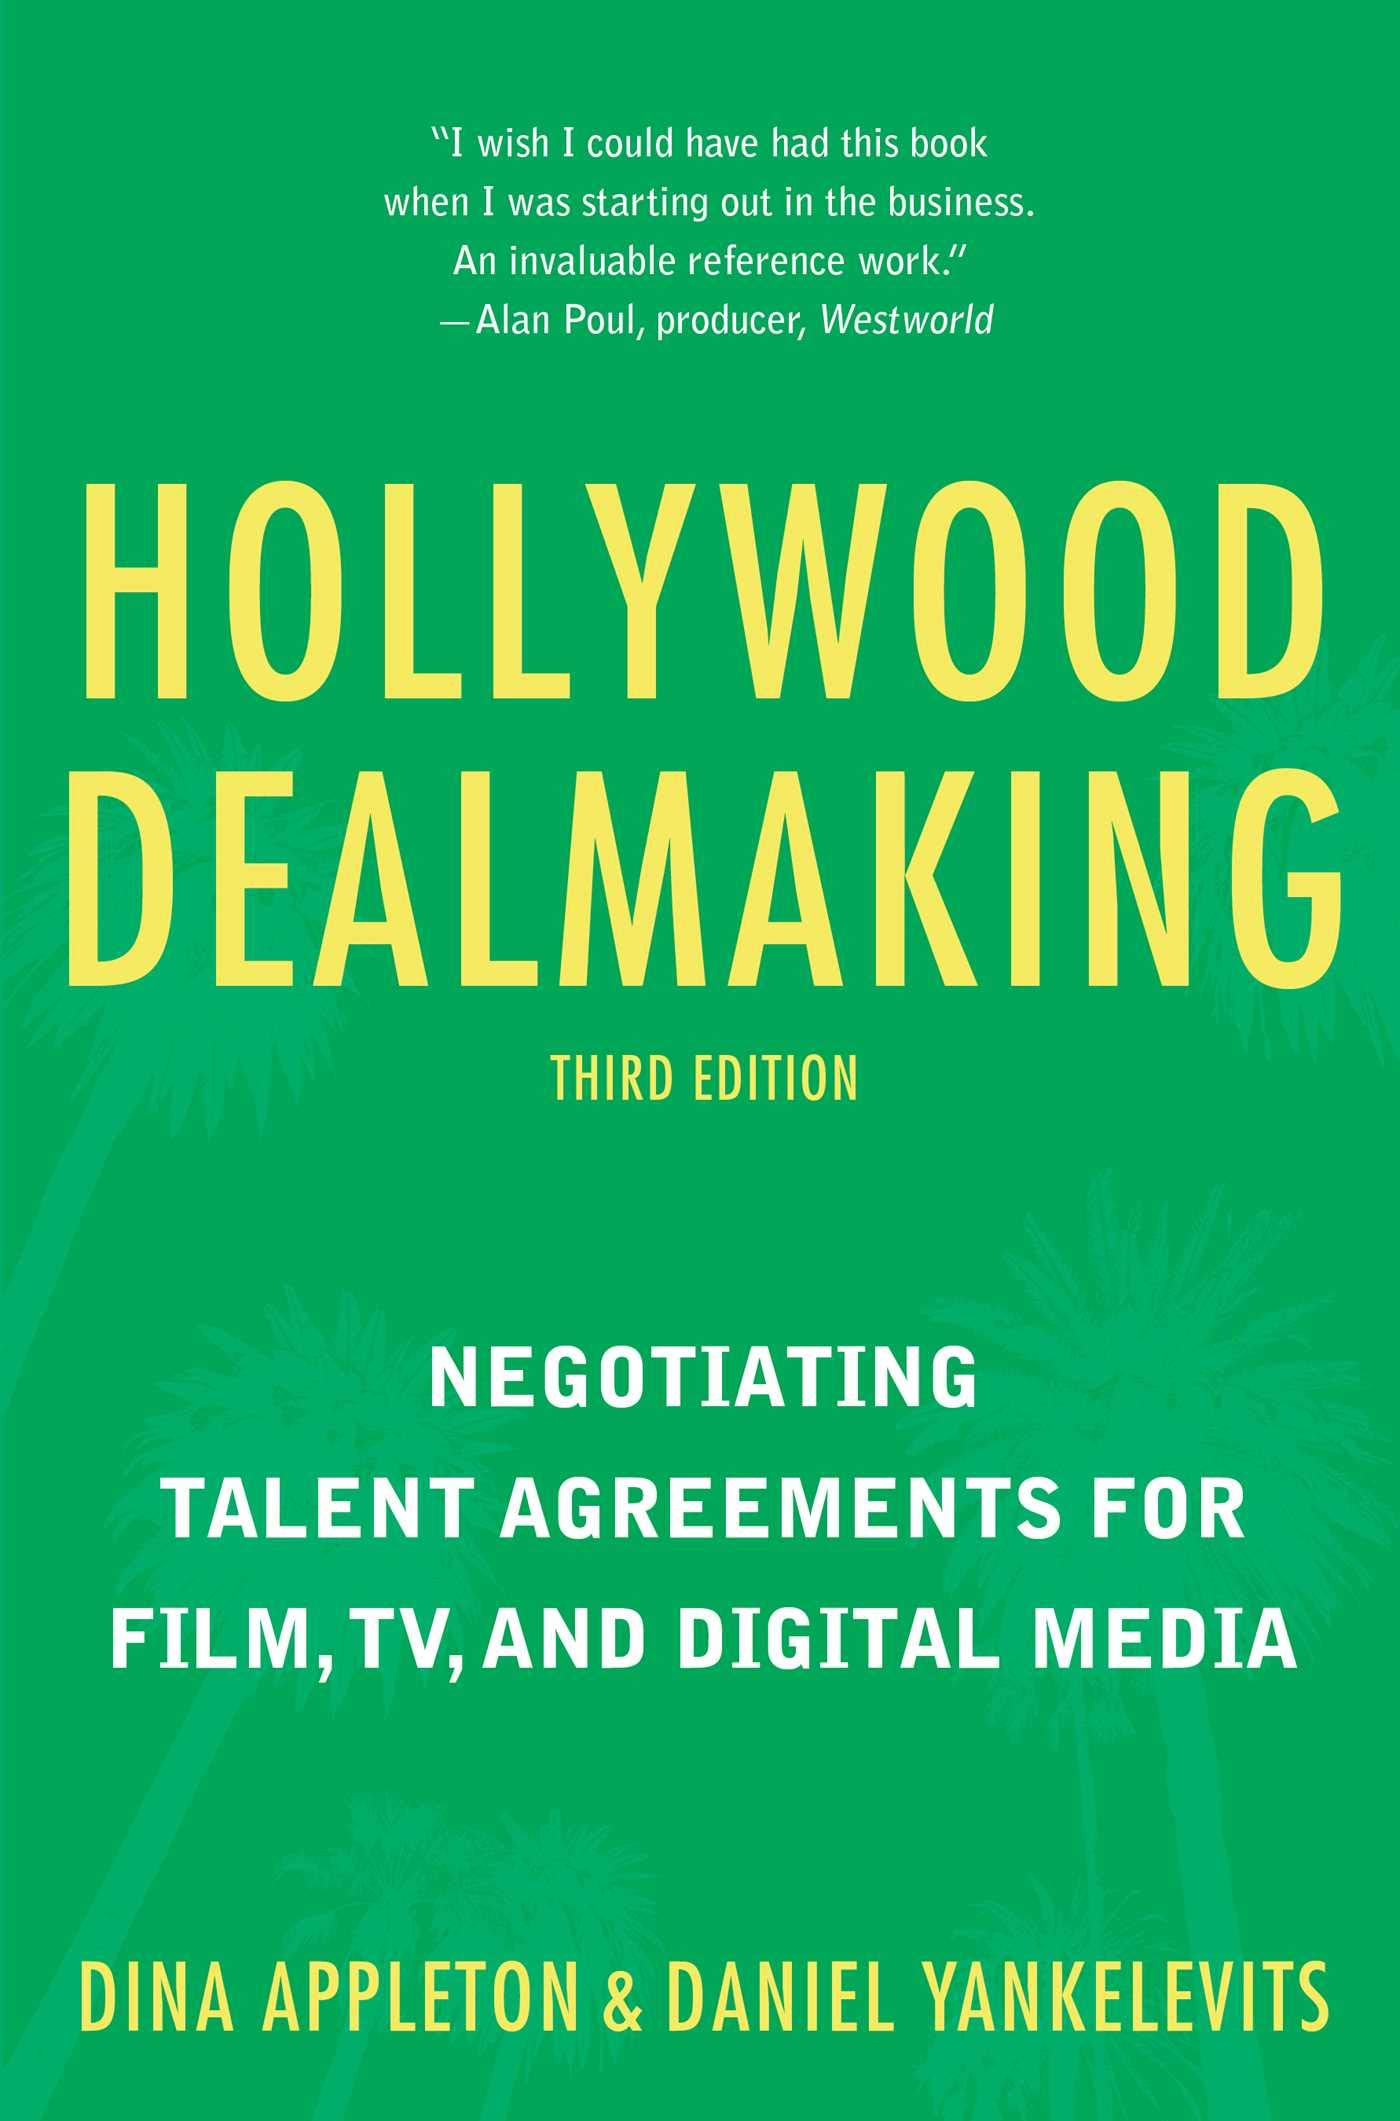 Hollywood Dealmaking: Negotiating Talent Agreements for Film, TV, and Digital Media